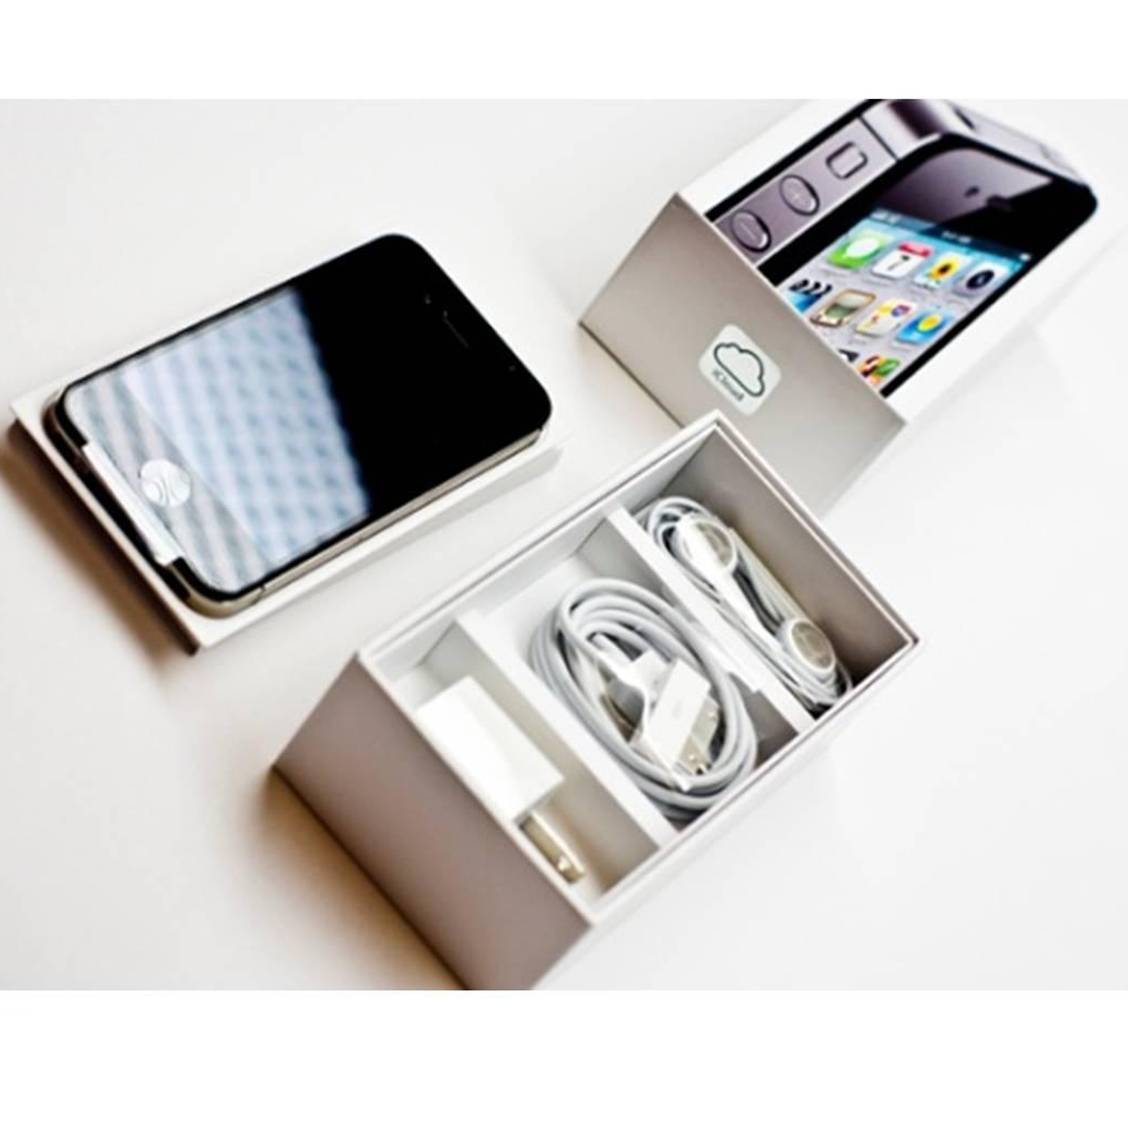 Iphone 4s Features And Price In Pakistan